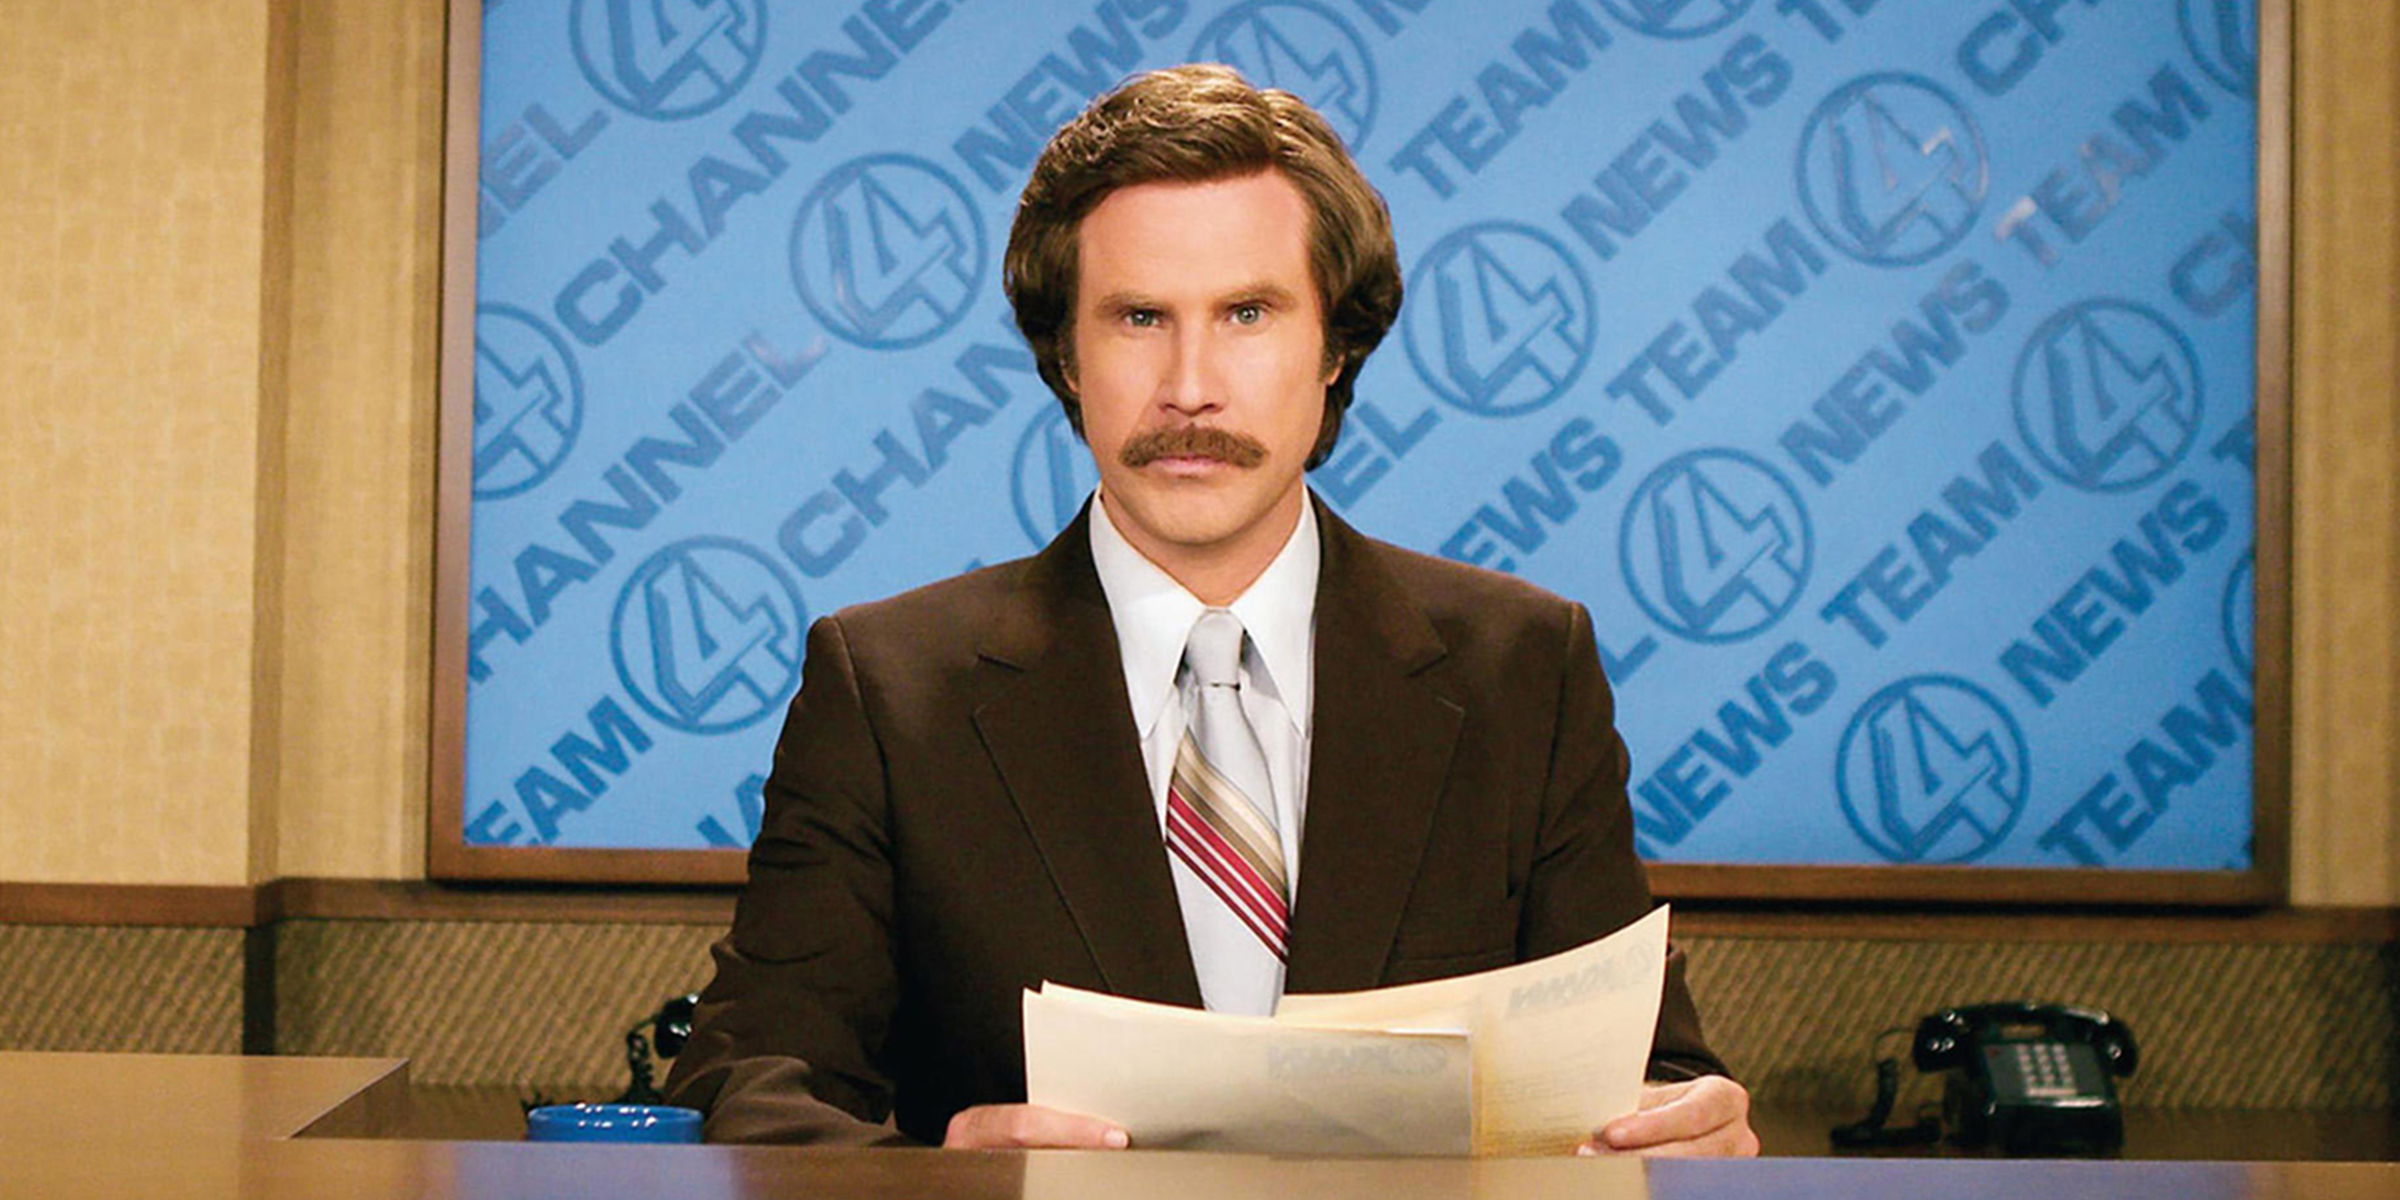 Will Ferrell appeared as Ron Burgundy on every late-night show last night